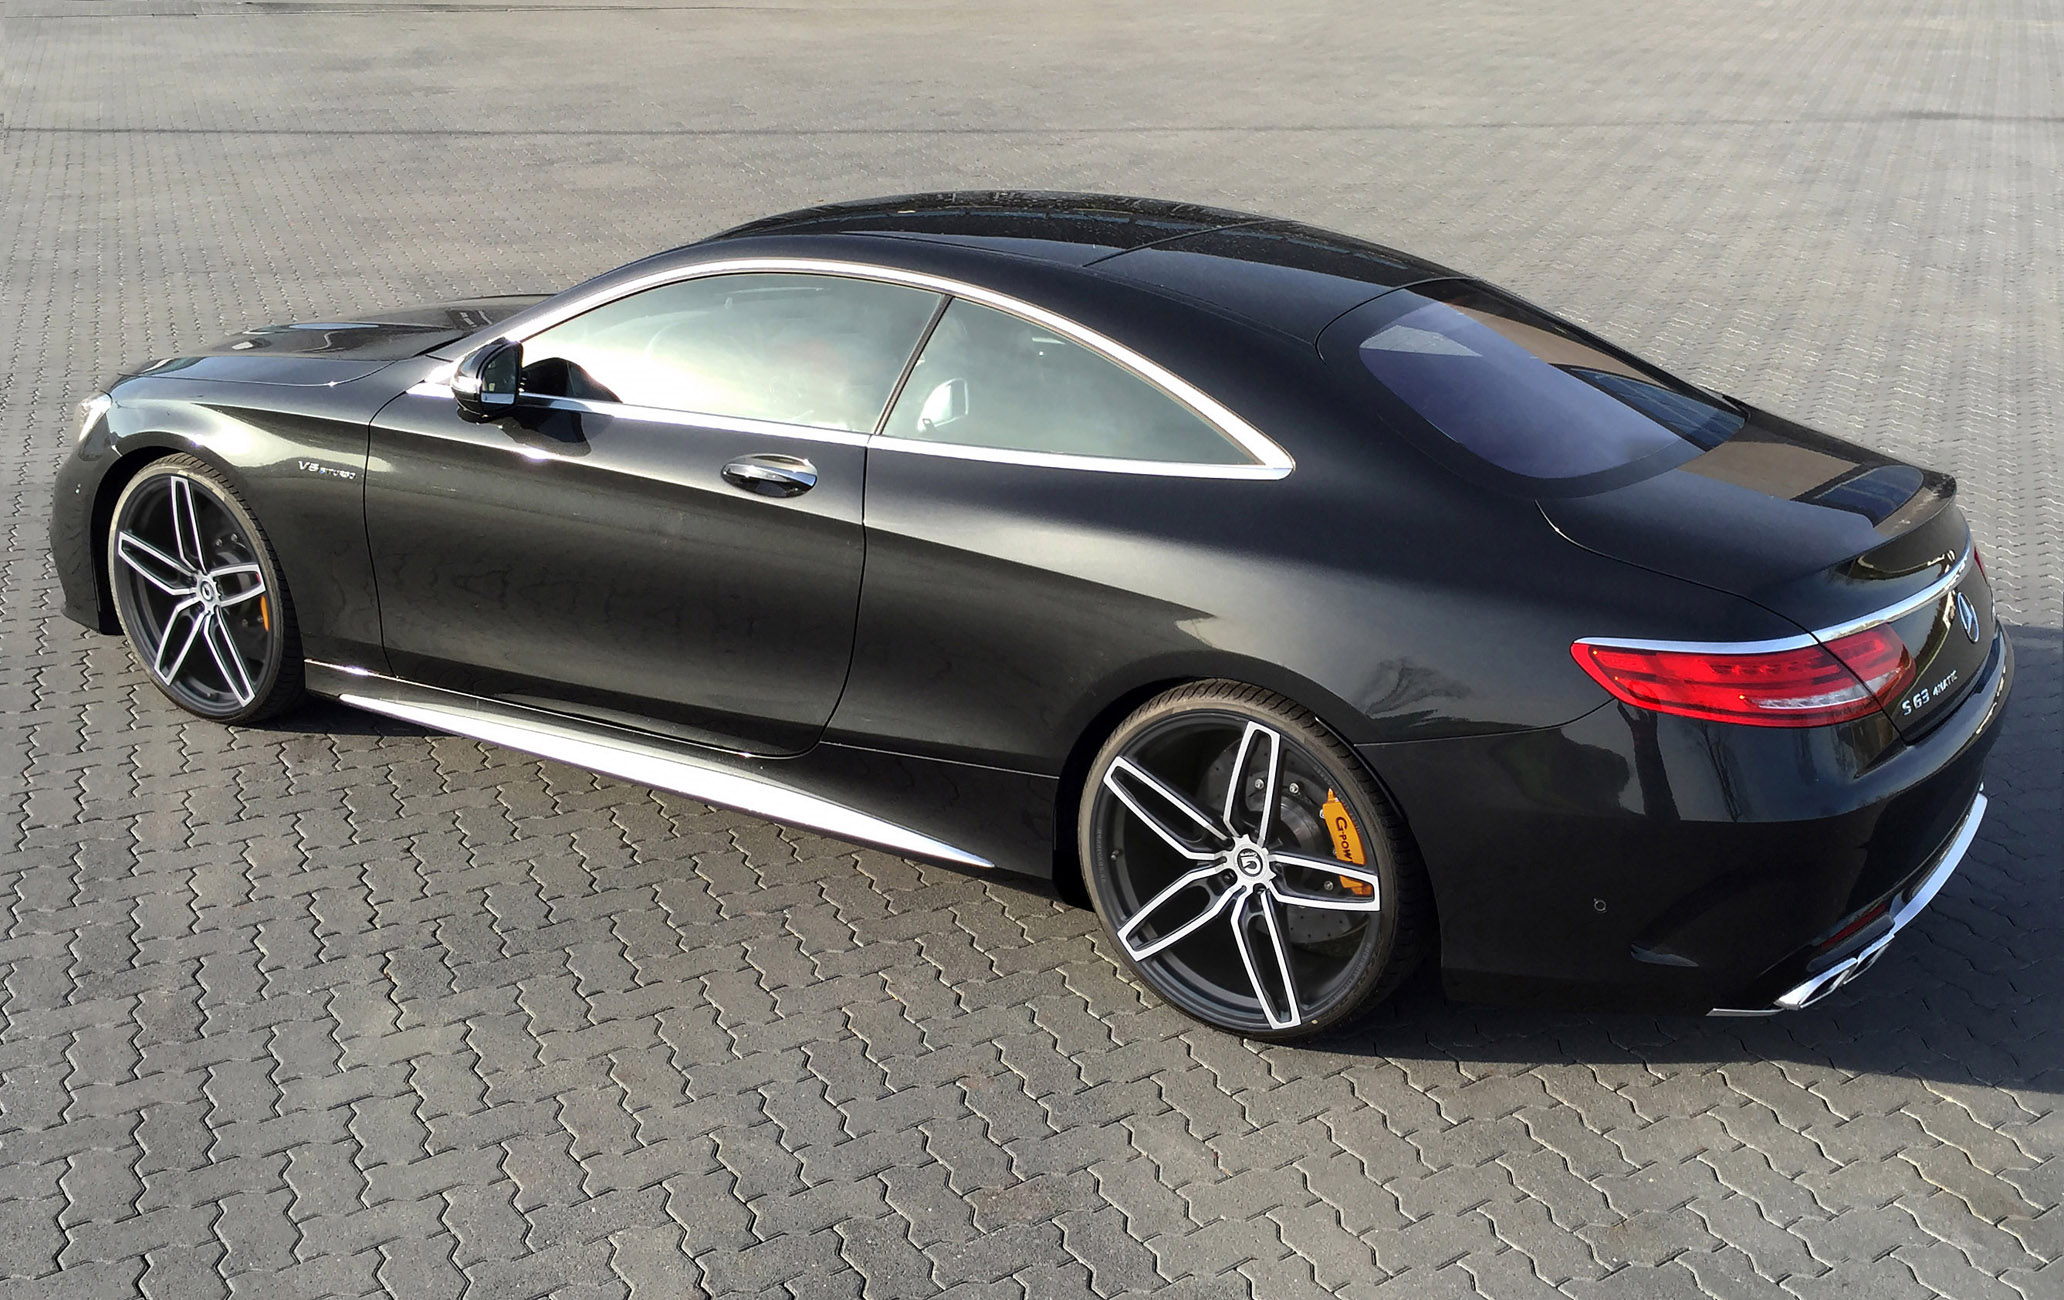 2014 G-Power Mercedes-Benz S63 AMG Coupe